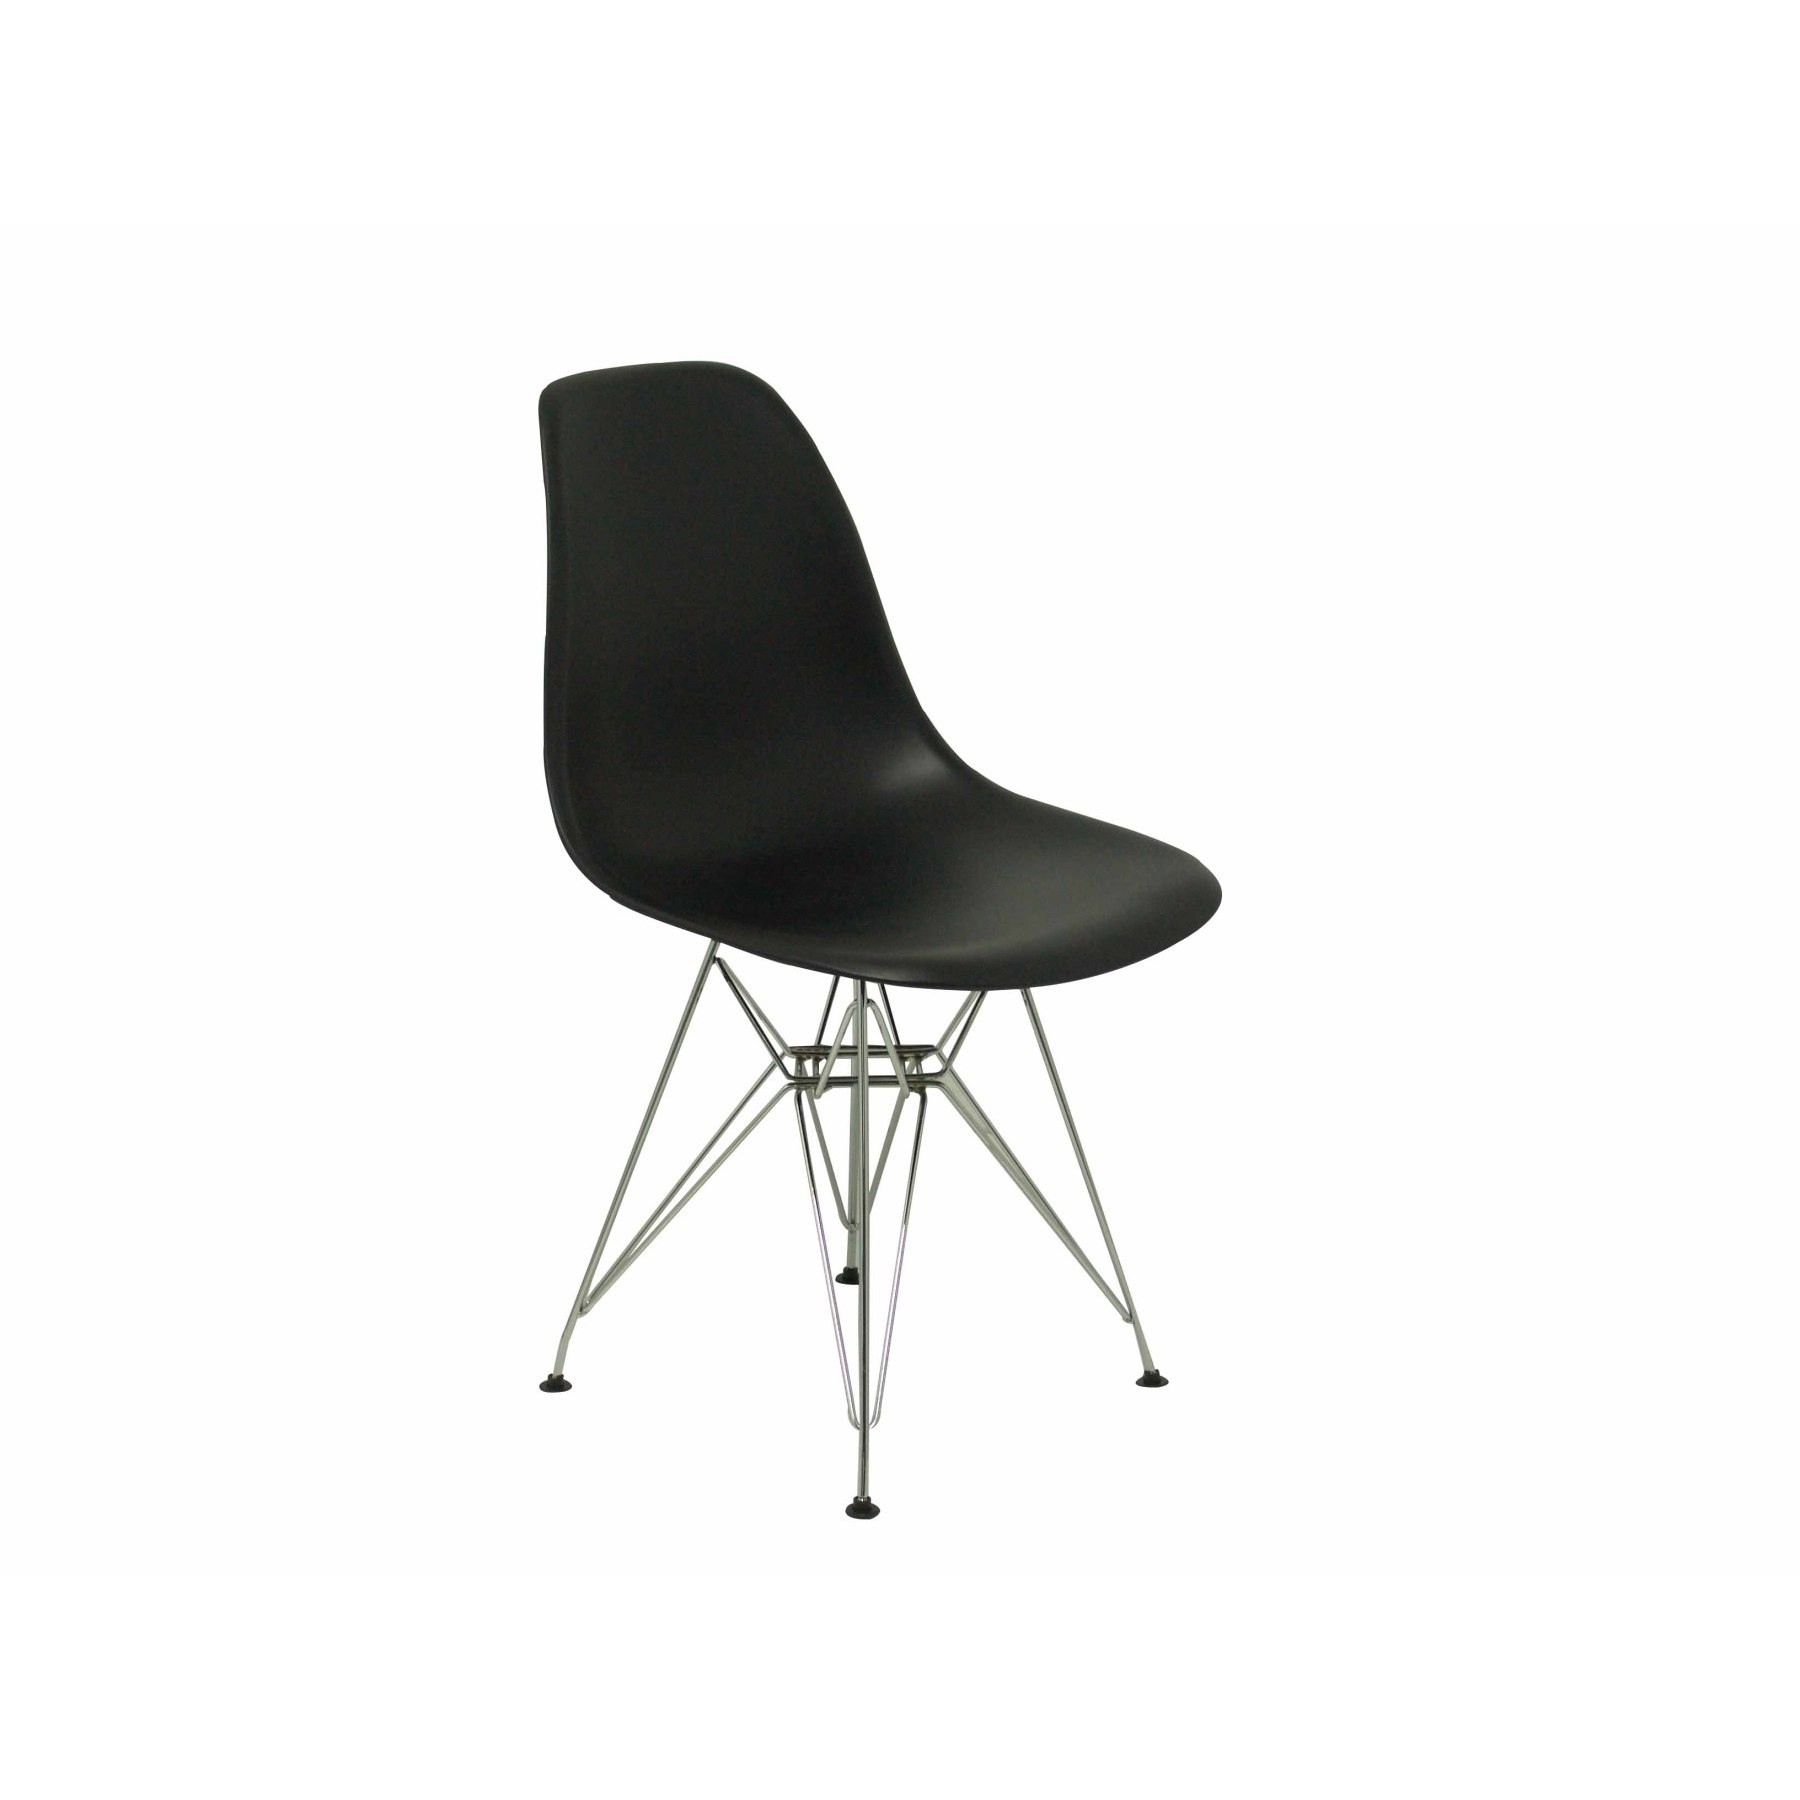 Pack of 4 chairs confident ergonomic and with metal frame  style Tower Seat and PVC backing  without acolc|Toilet Seat Lifters| |  - title=